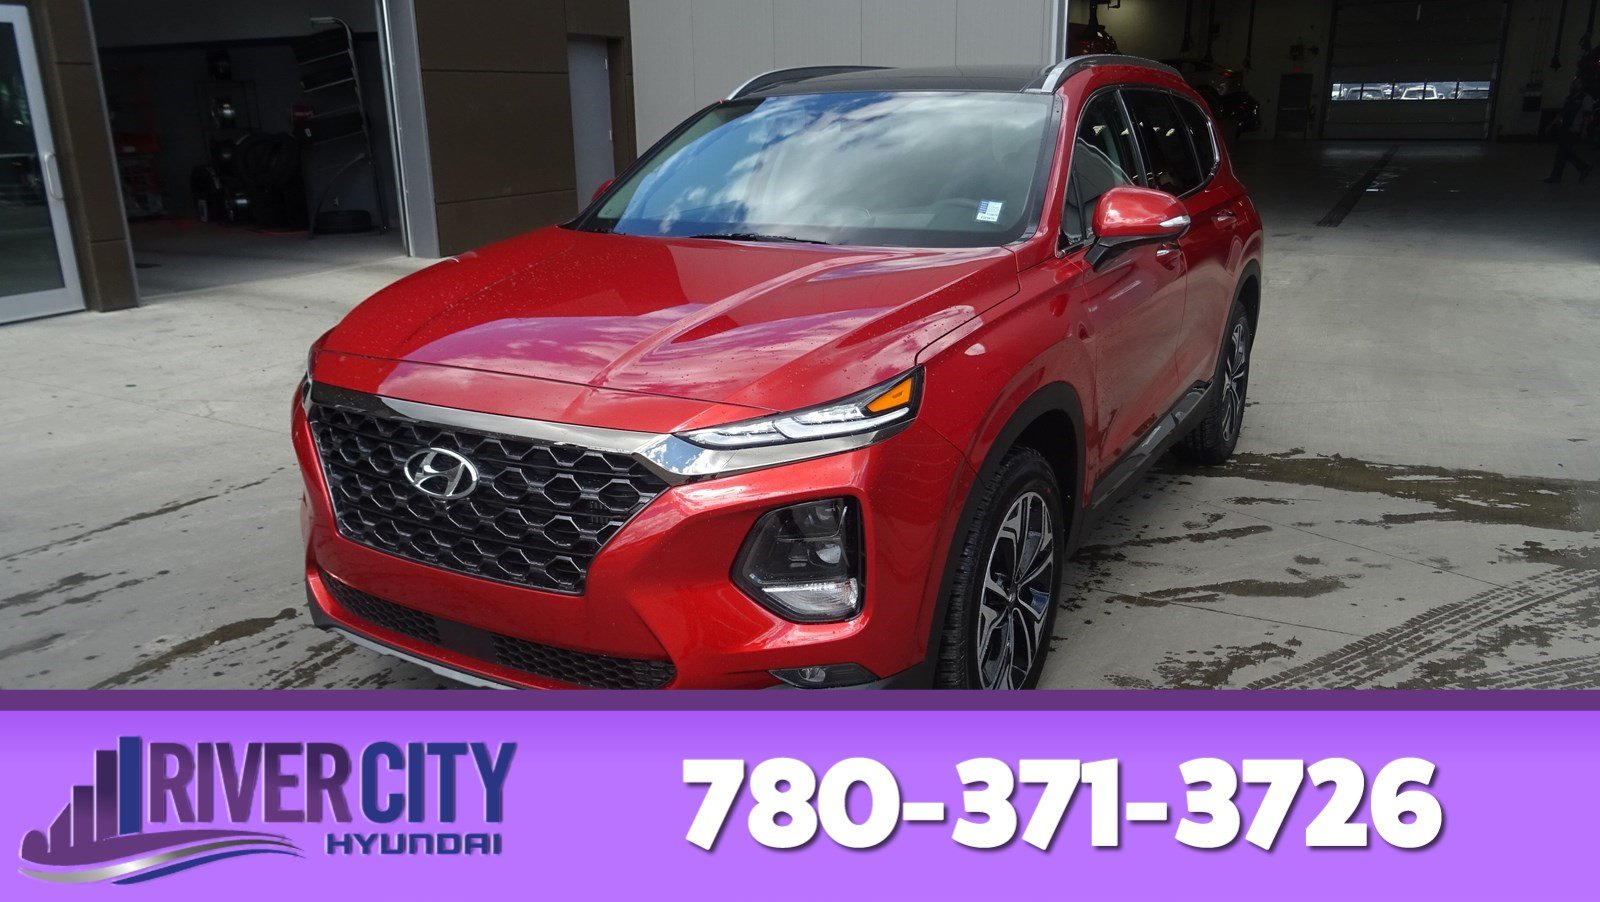 New 2019 Hyundai Santa Fe ULTIMATE AWD 2.0T 8 TOUCH SCREEN NAV SYSTEM,BLUELINK,INFINITY PREMIUM AUDIO,LEATHER SEATING SURFACE